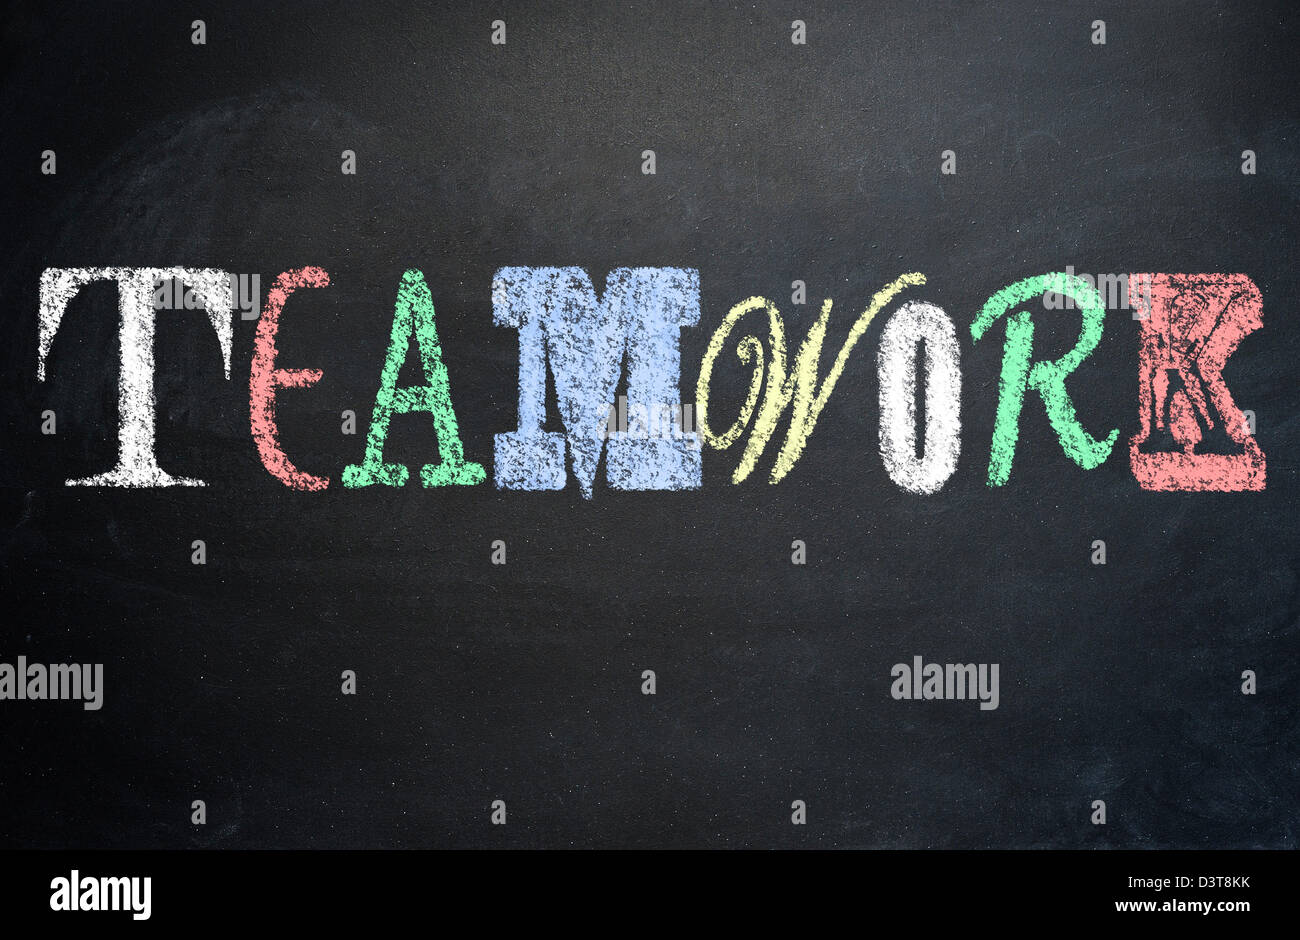 Working together concept, teamwork written with various letter fonts on a blackboard - Stock Image